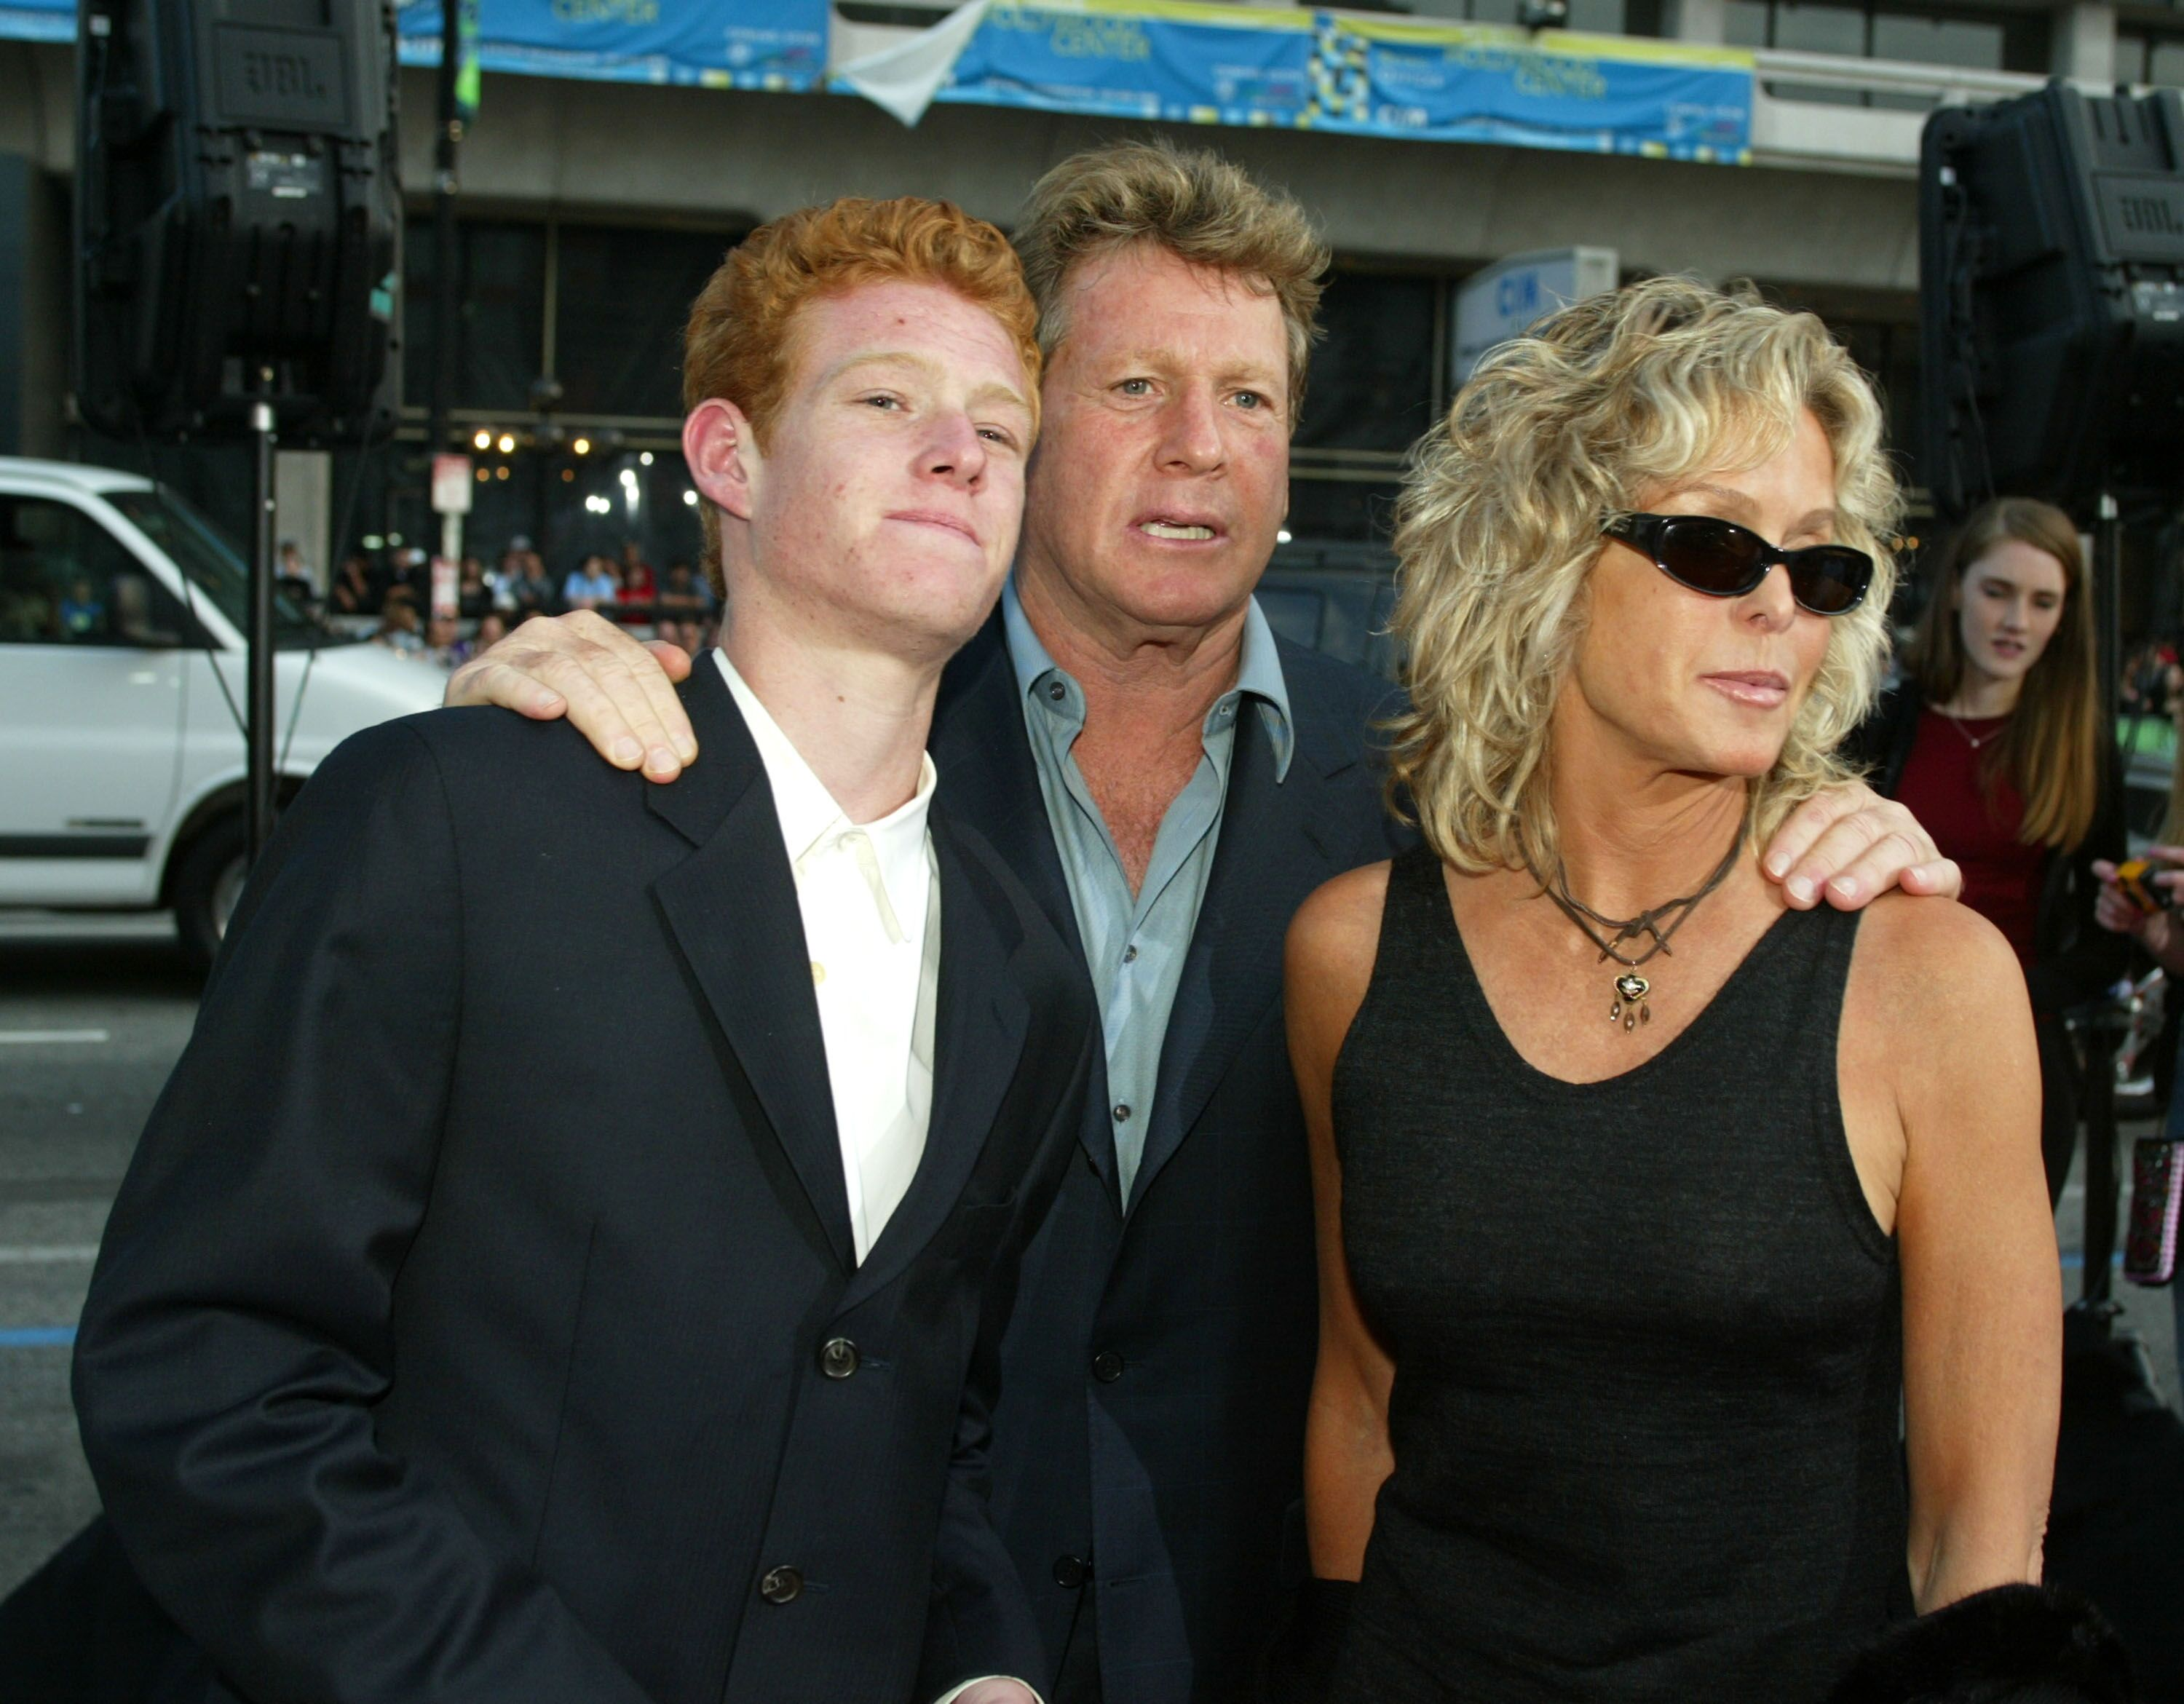 Farrah Fawcett with Redmond and Ryan O'Neal at the Graumans Chinese Theater in Hollywood, California| Source: Getty Images